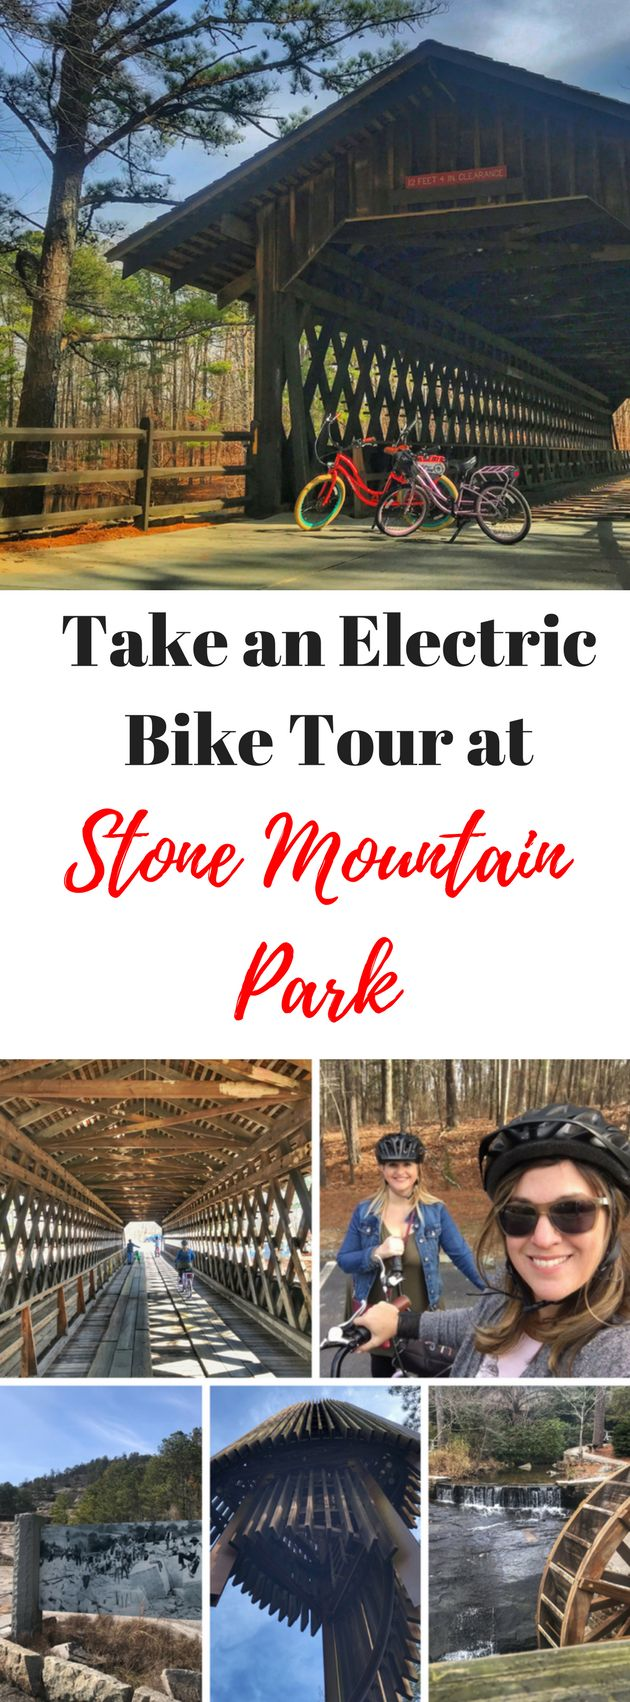 See hidden gems in Stone Mountain Park in Atlanta's DeKalb County on an electric bike tour.  Georgia, United States